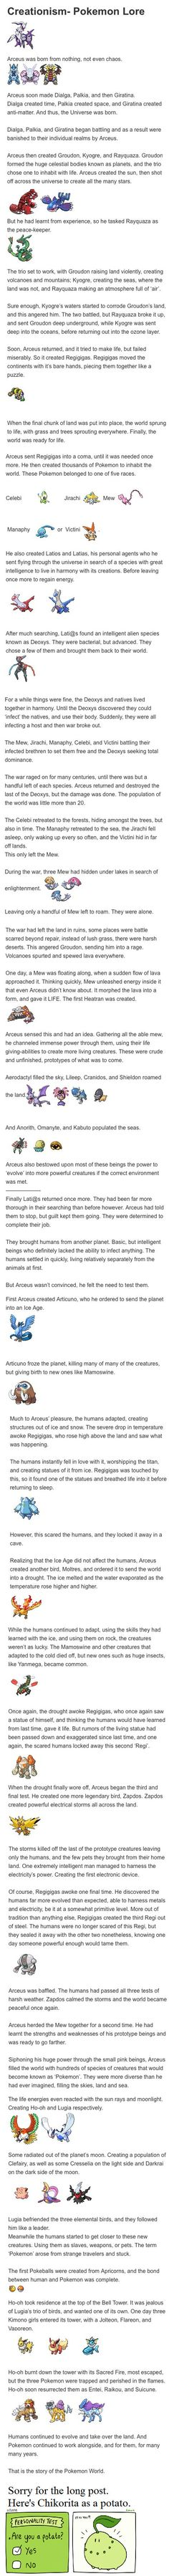 With all this Pokemon hype going around, I find this fitting.